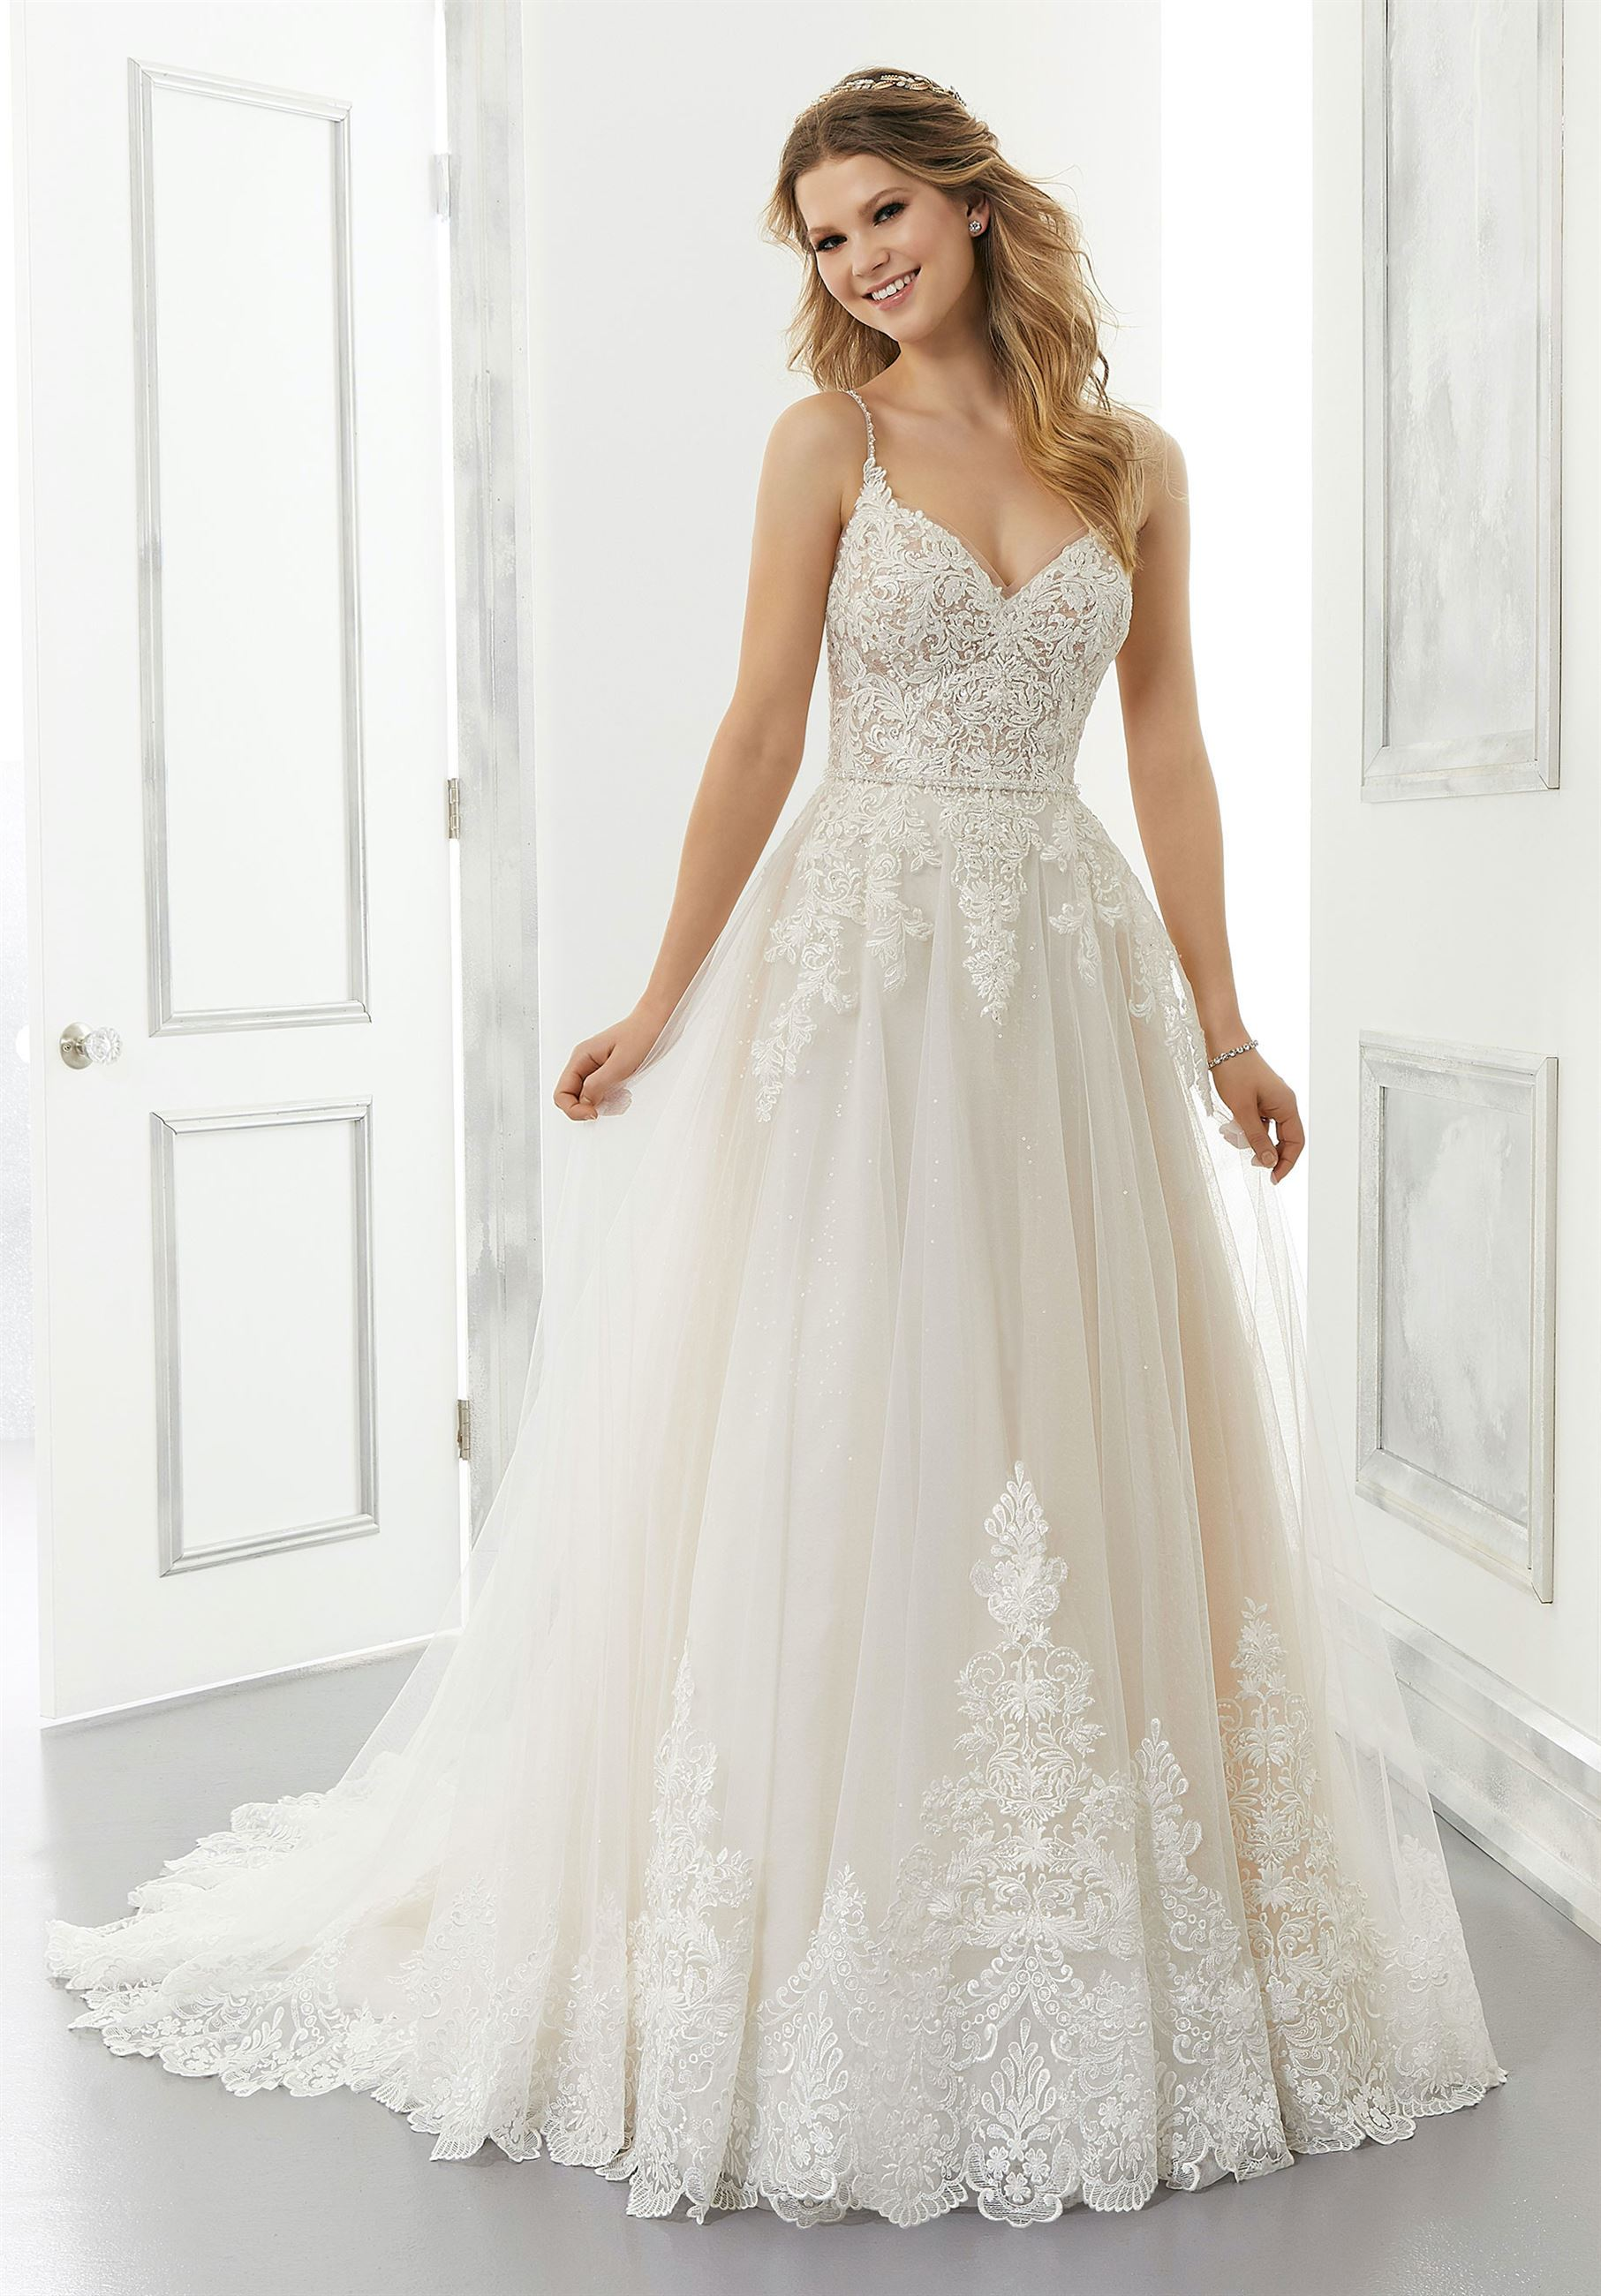 Bromley Brides   Wedding Dresses In Bromley, UK   With Prom ...